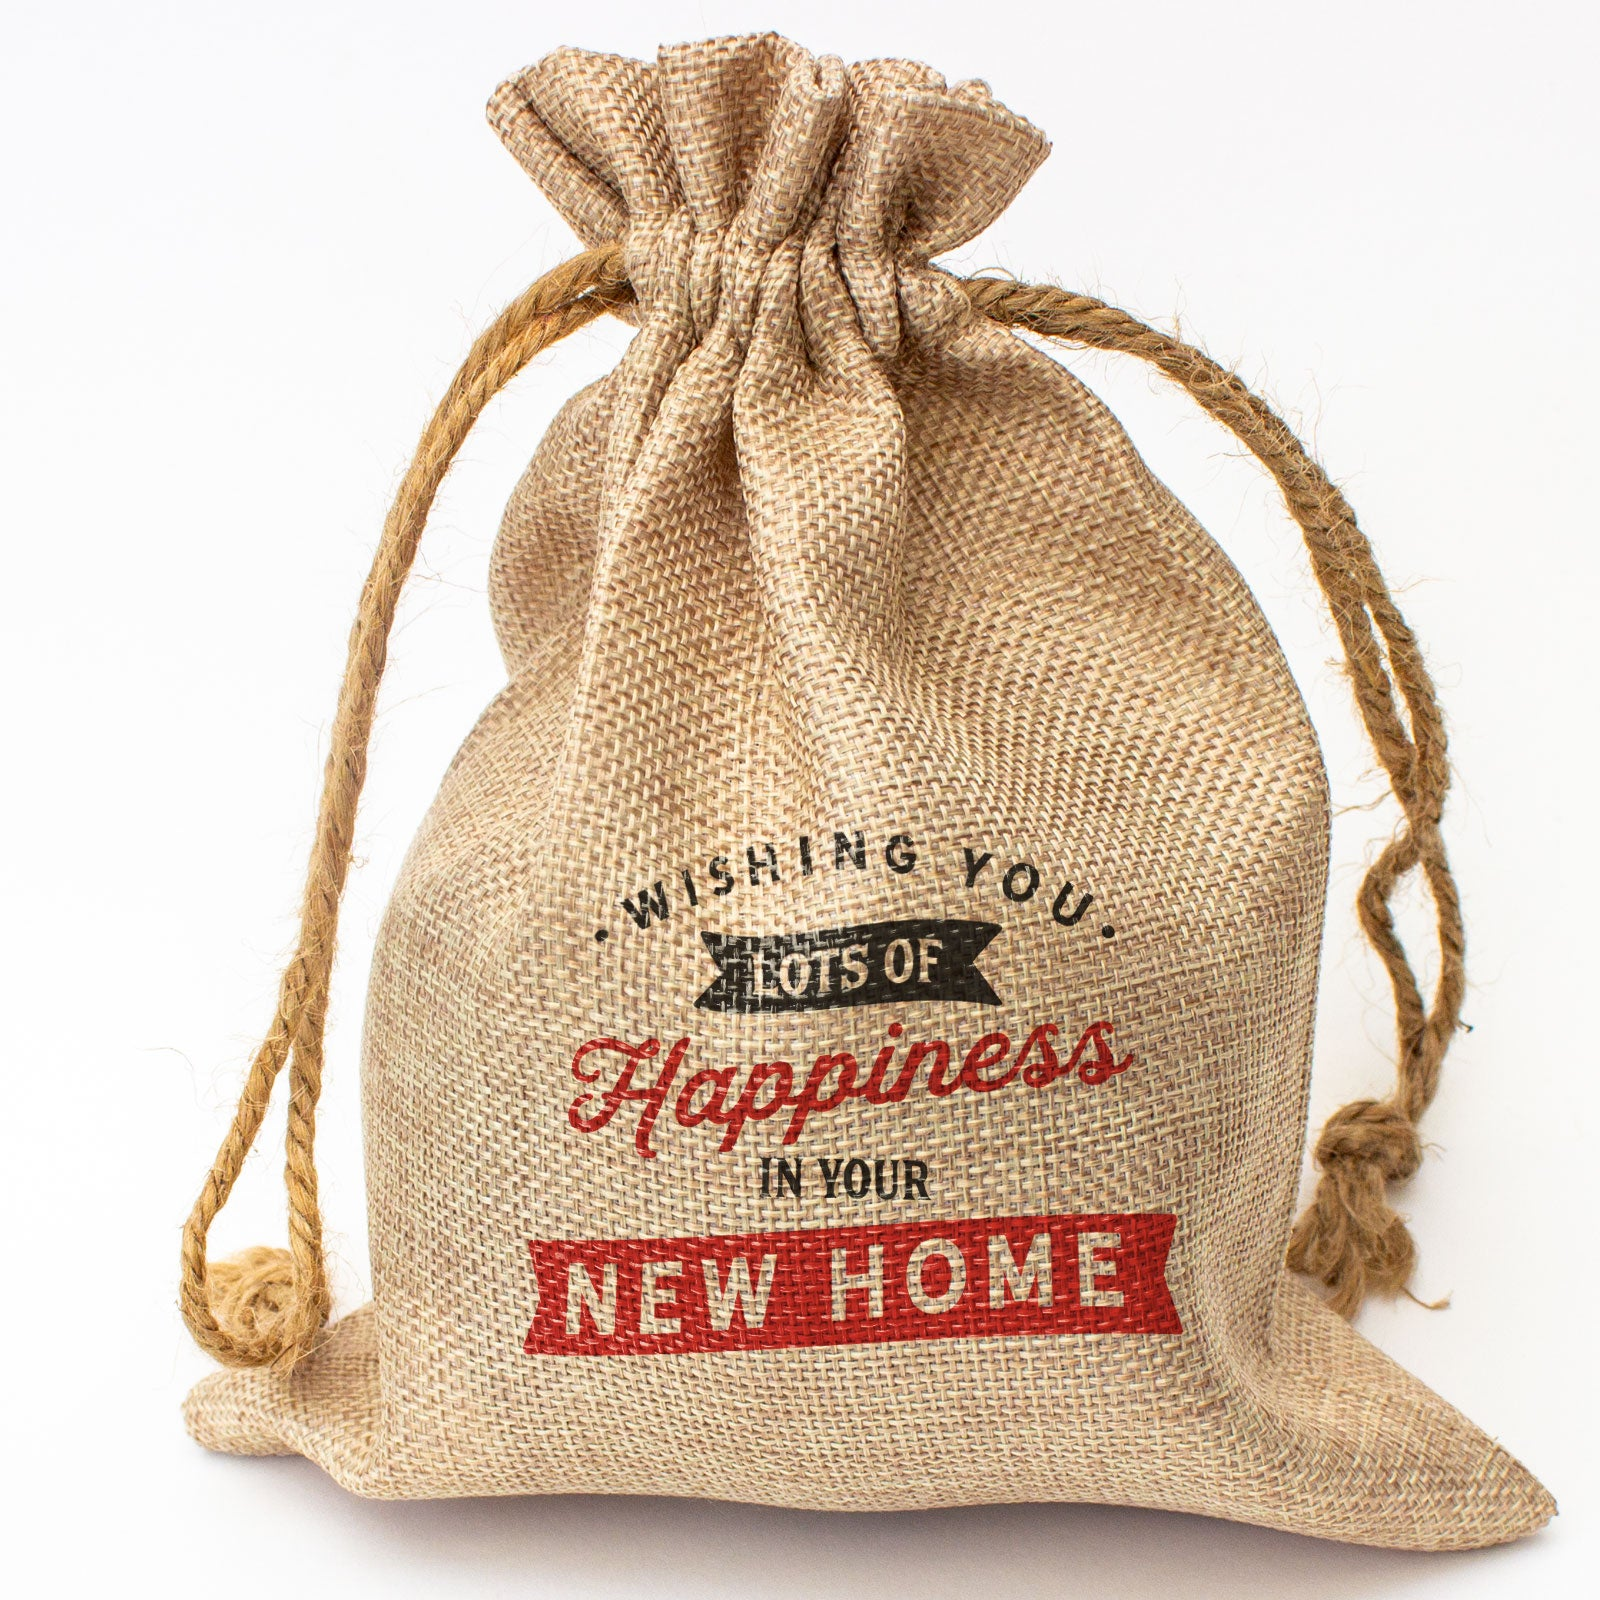 WISHING YOU LOTS OF HAPPINESS IN YOUR NEW HOME - Toasted Coconut Bowl Candle – Soy Wax - Gift Present